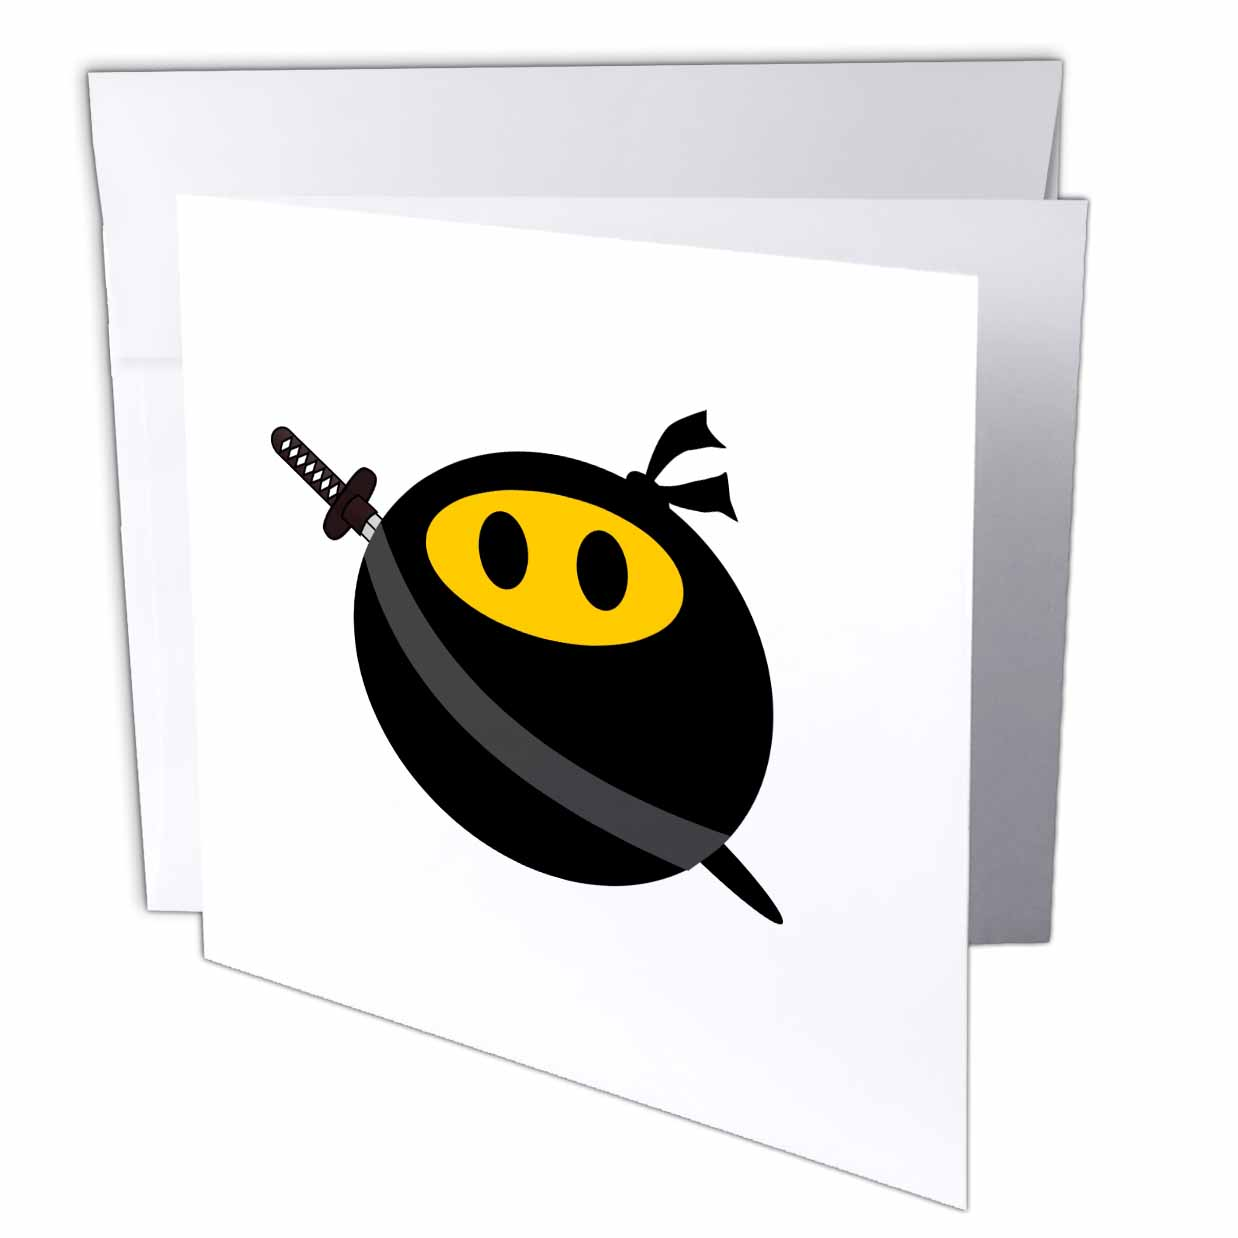 3dRose Ninja smiley face - funny masked yellow happy face - fun cute spy with Japanese sword and black mask, Greeting Cards, 6 x 6 inches, set of 6